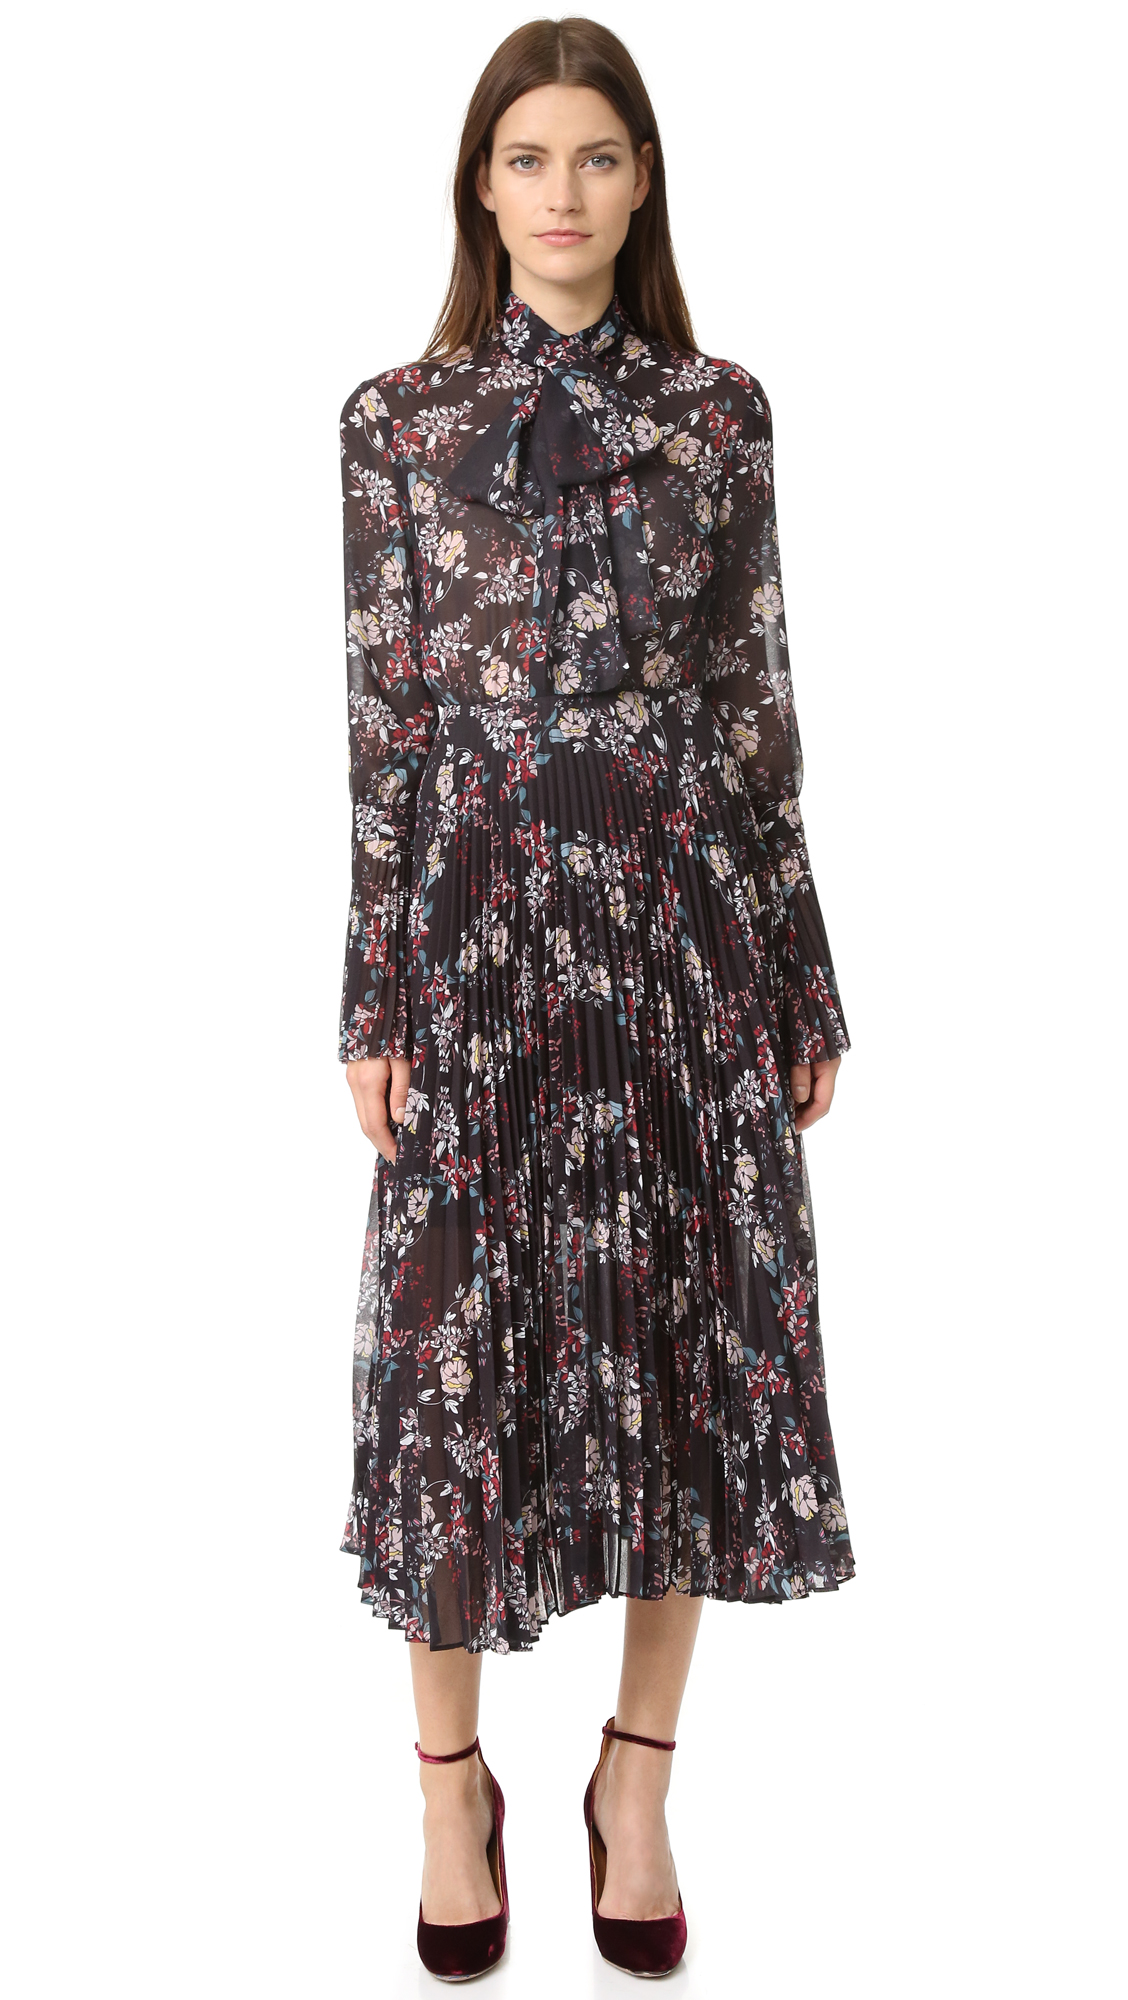 Nicholas Pleated Floral Dress - Black